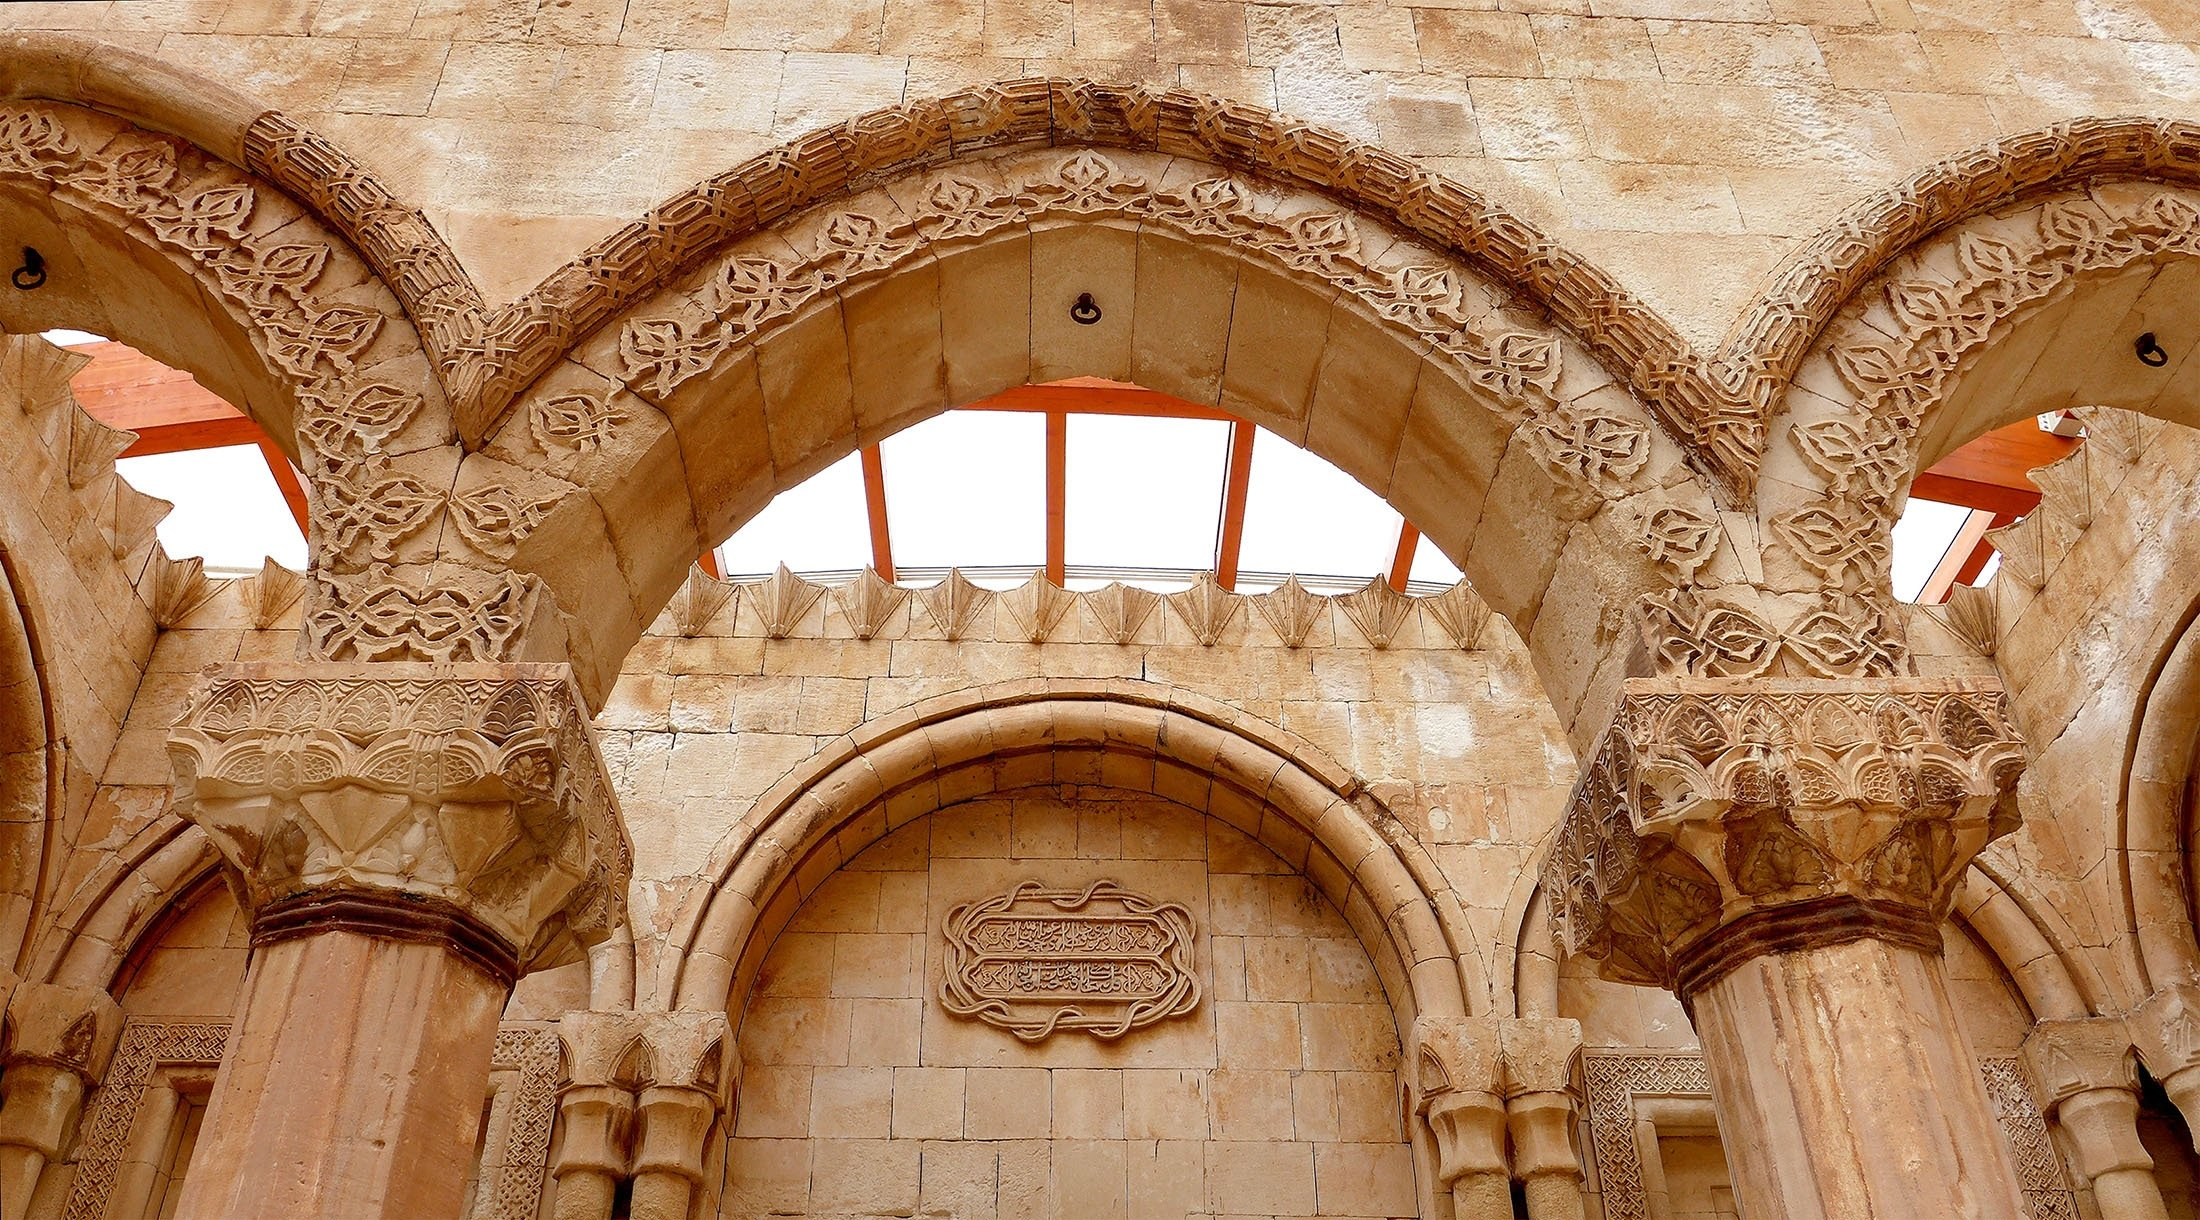 The unique architecture and style of theIshak Pasha Palace can be seen inthe Doğubayazıt district of Ağrı, Turkey. (Shutterstock Photo)